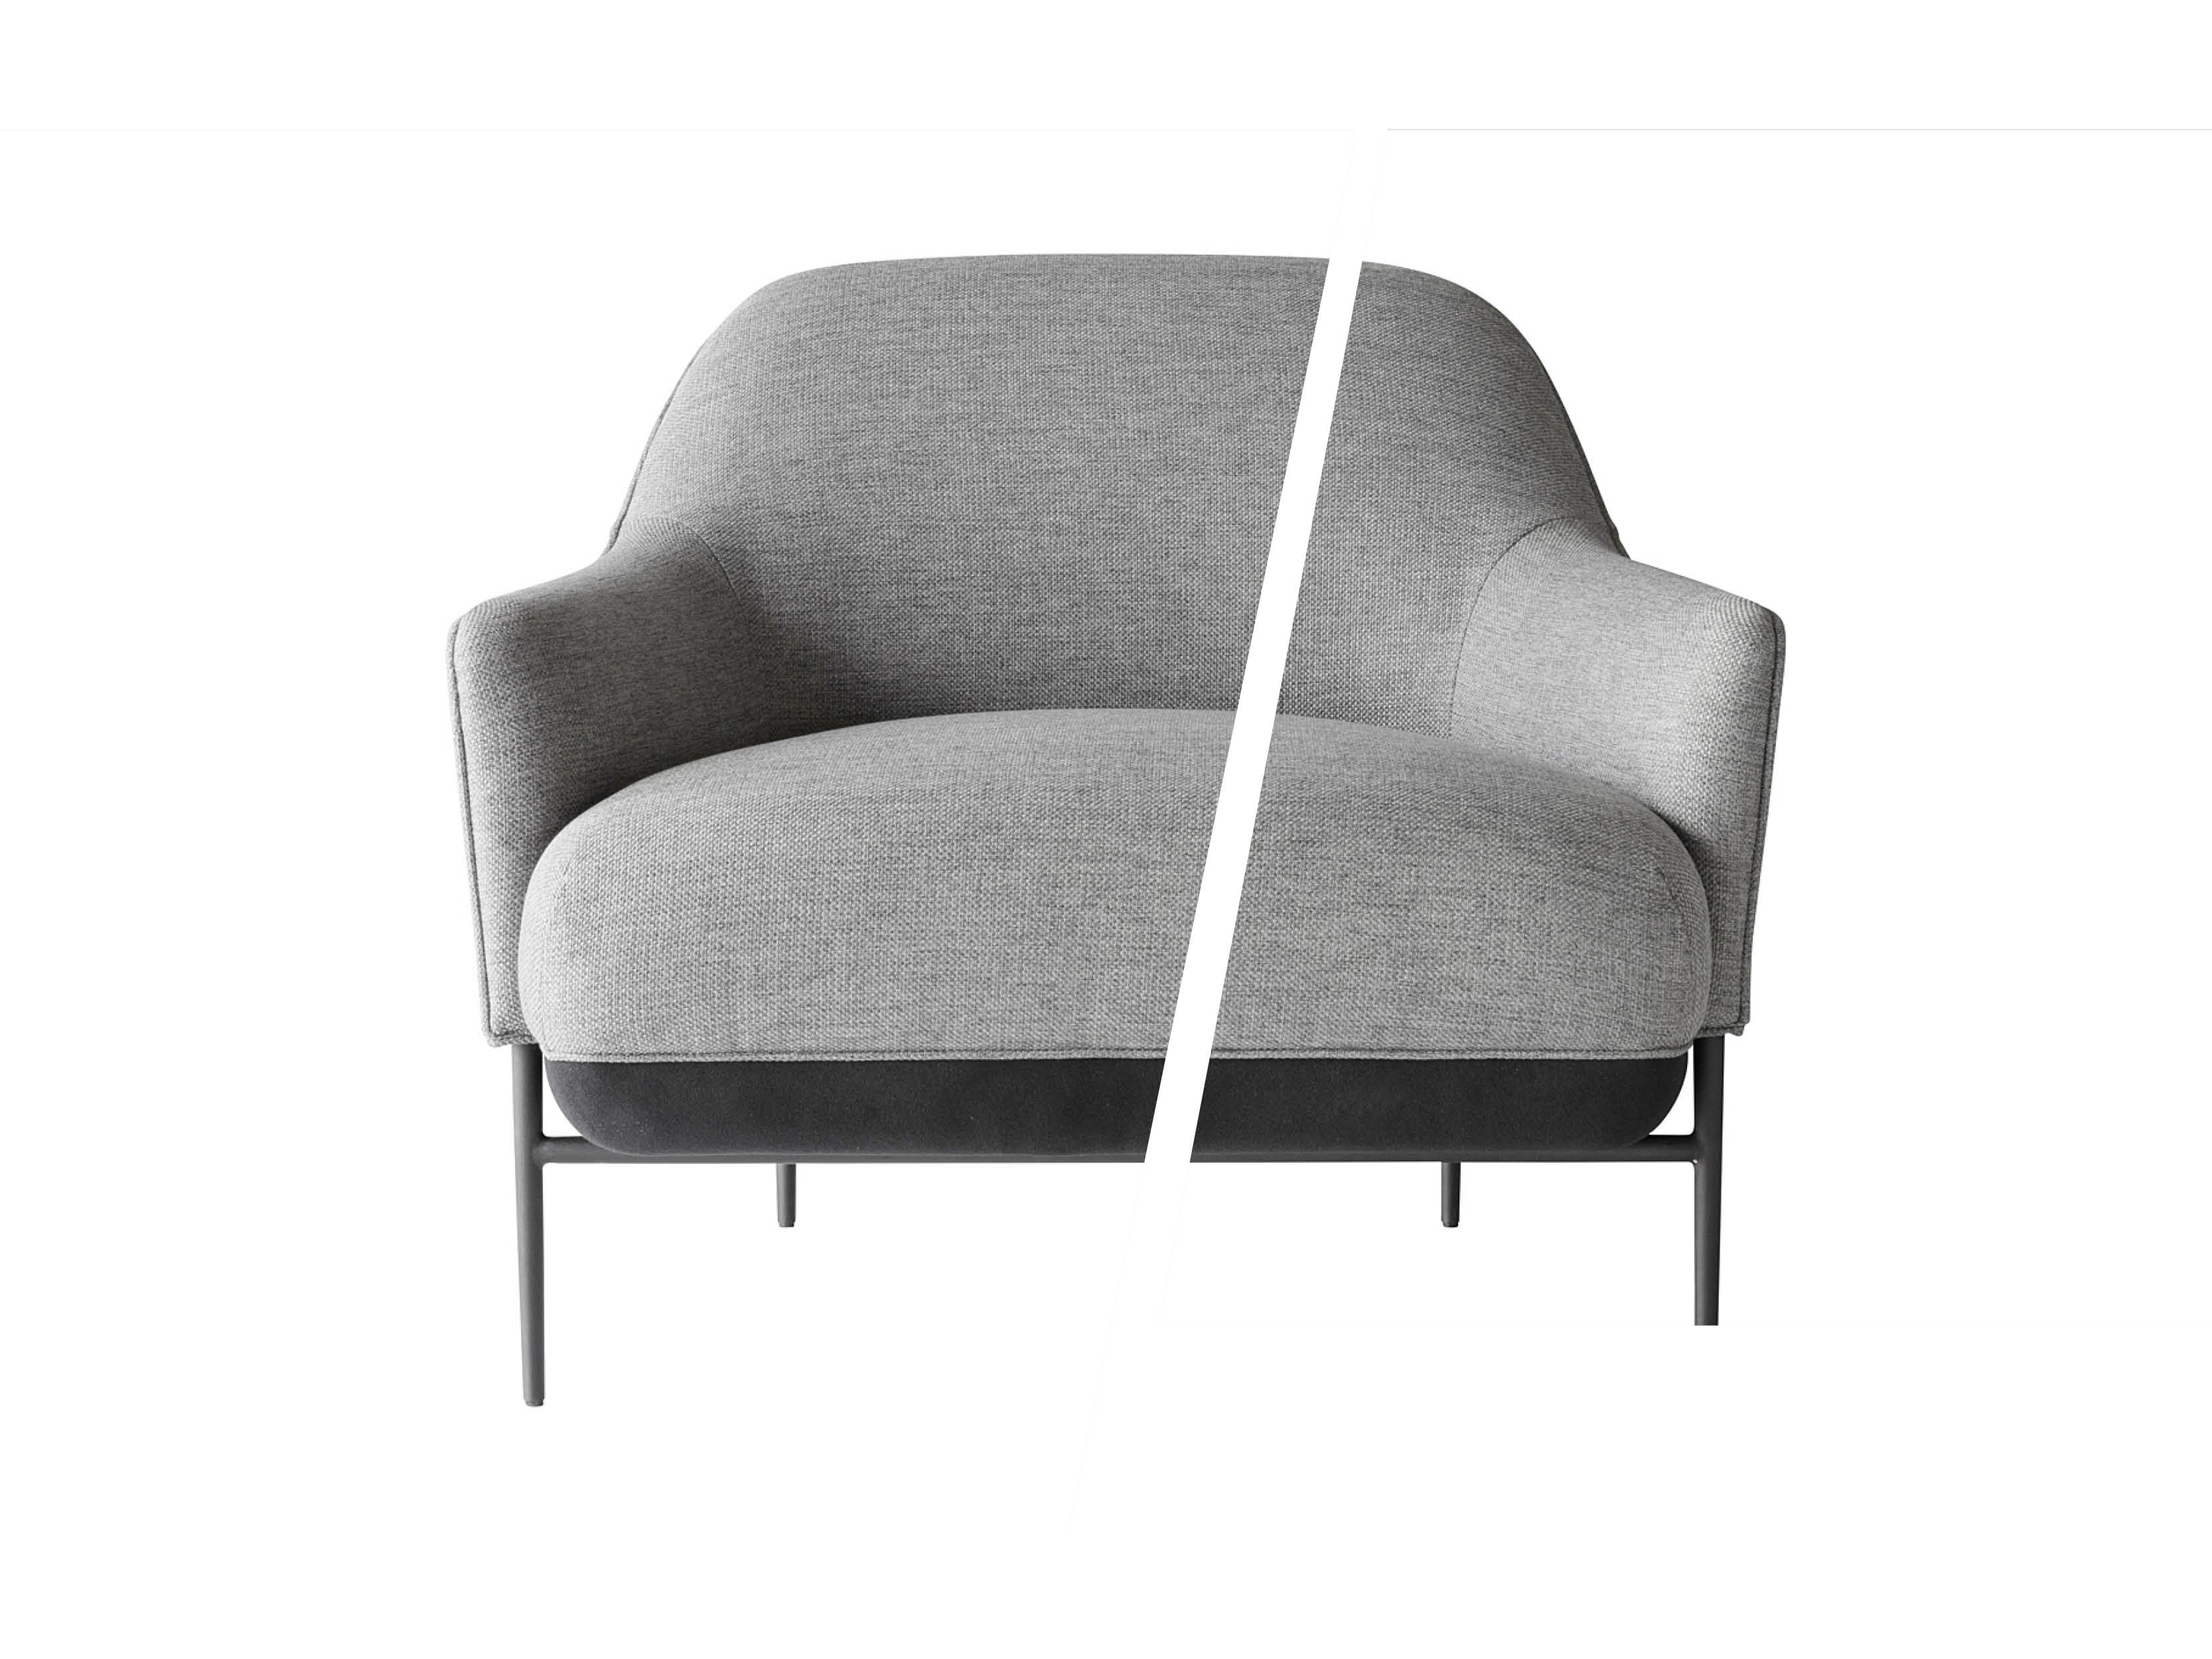 Curvy, mobile and green – the seating trends of 2018 - Rounder, softer